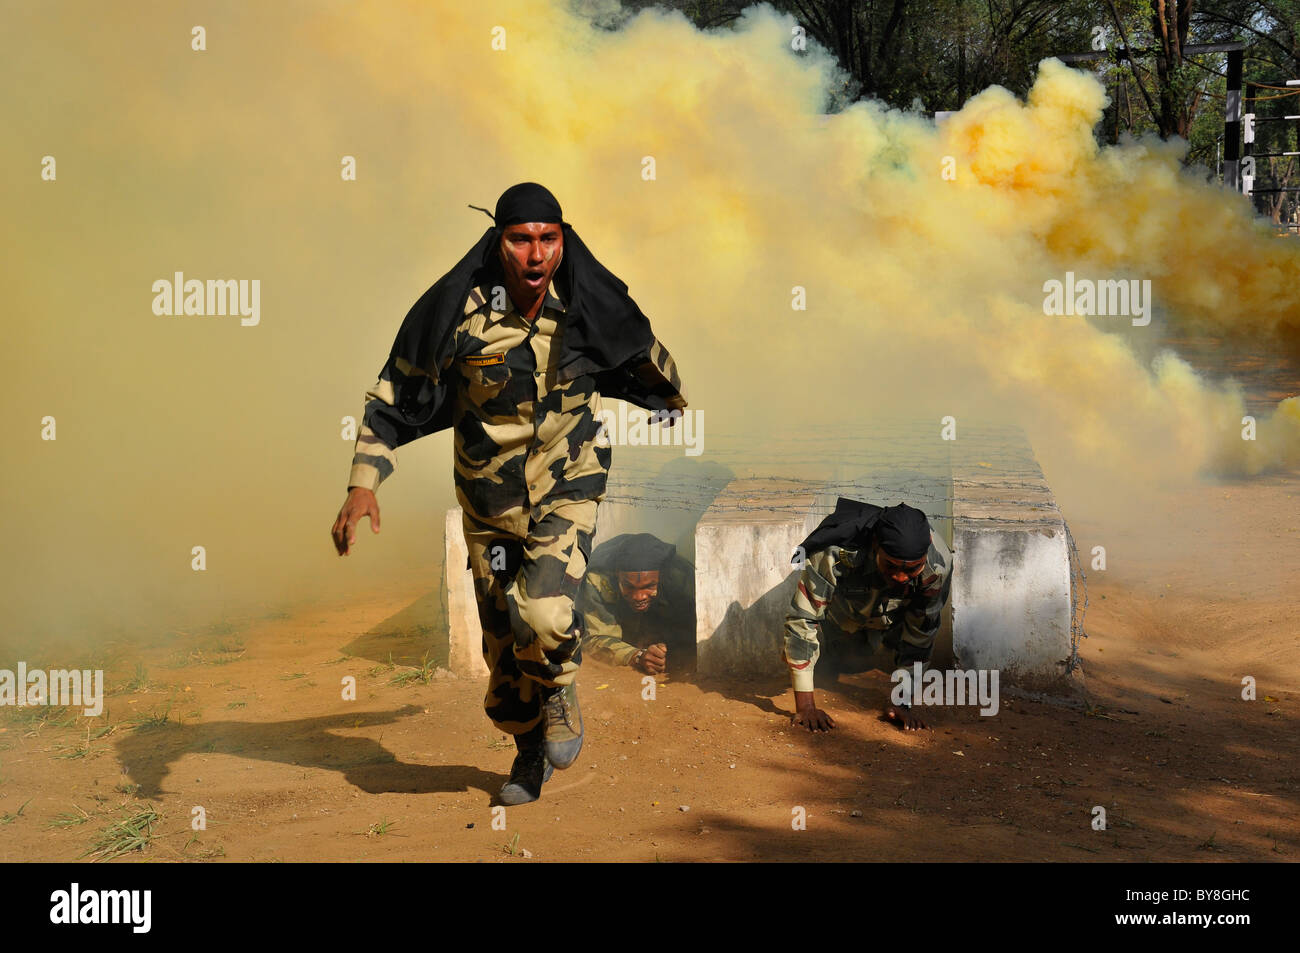 Three Indian soldiers doing commando training - Stock Image